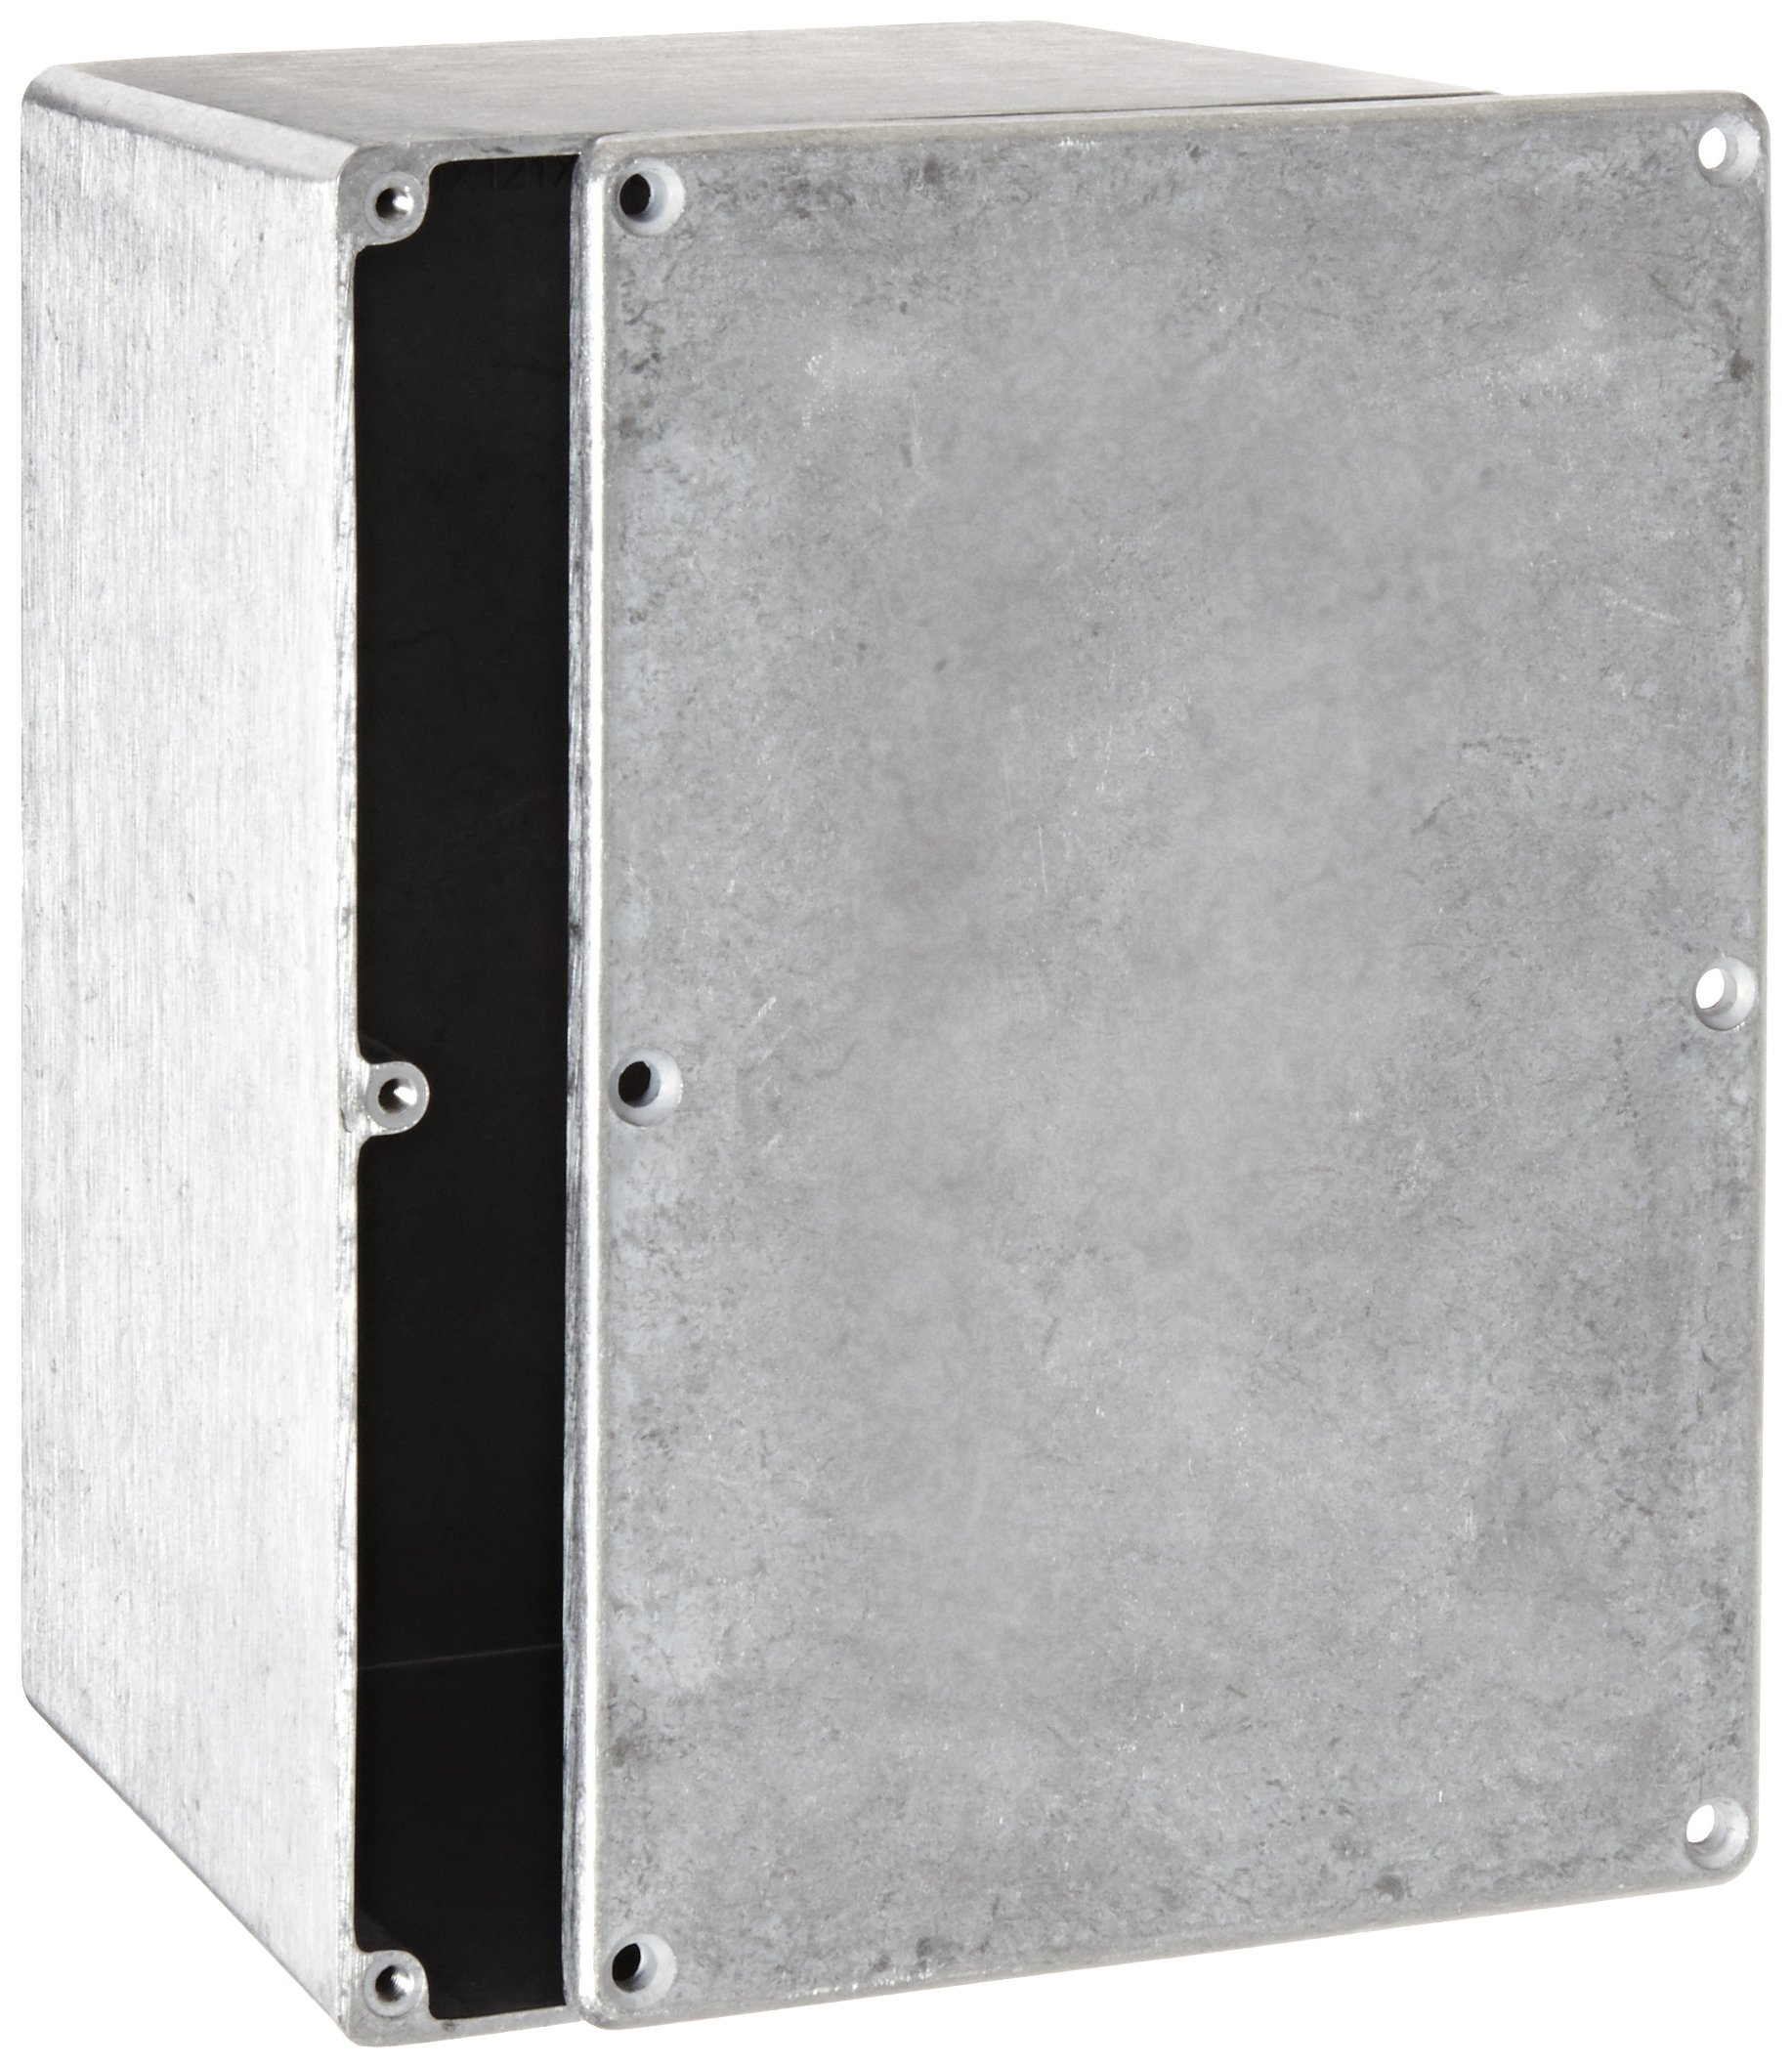 BUD Industries CN-5710 Die Cast Aluminum Enclosure, 6-49/64'' Length x 4-49/64'' Width x 4-13/64'' Height, Natural Finish